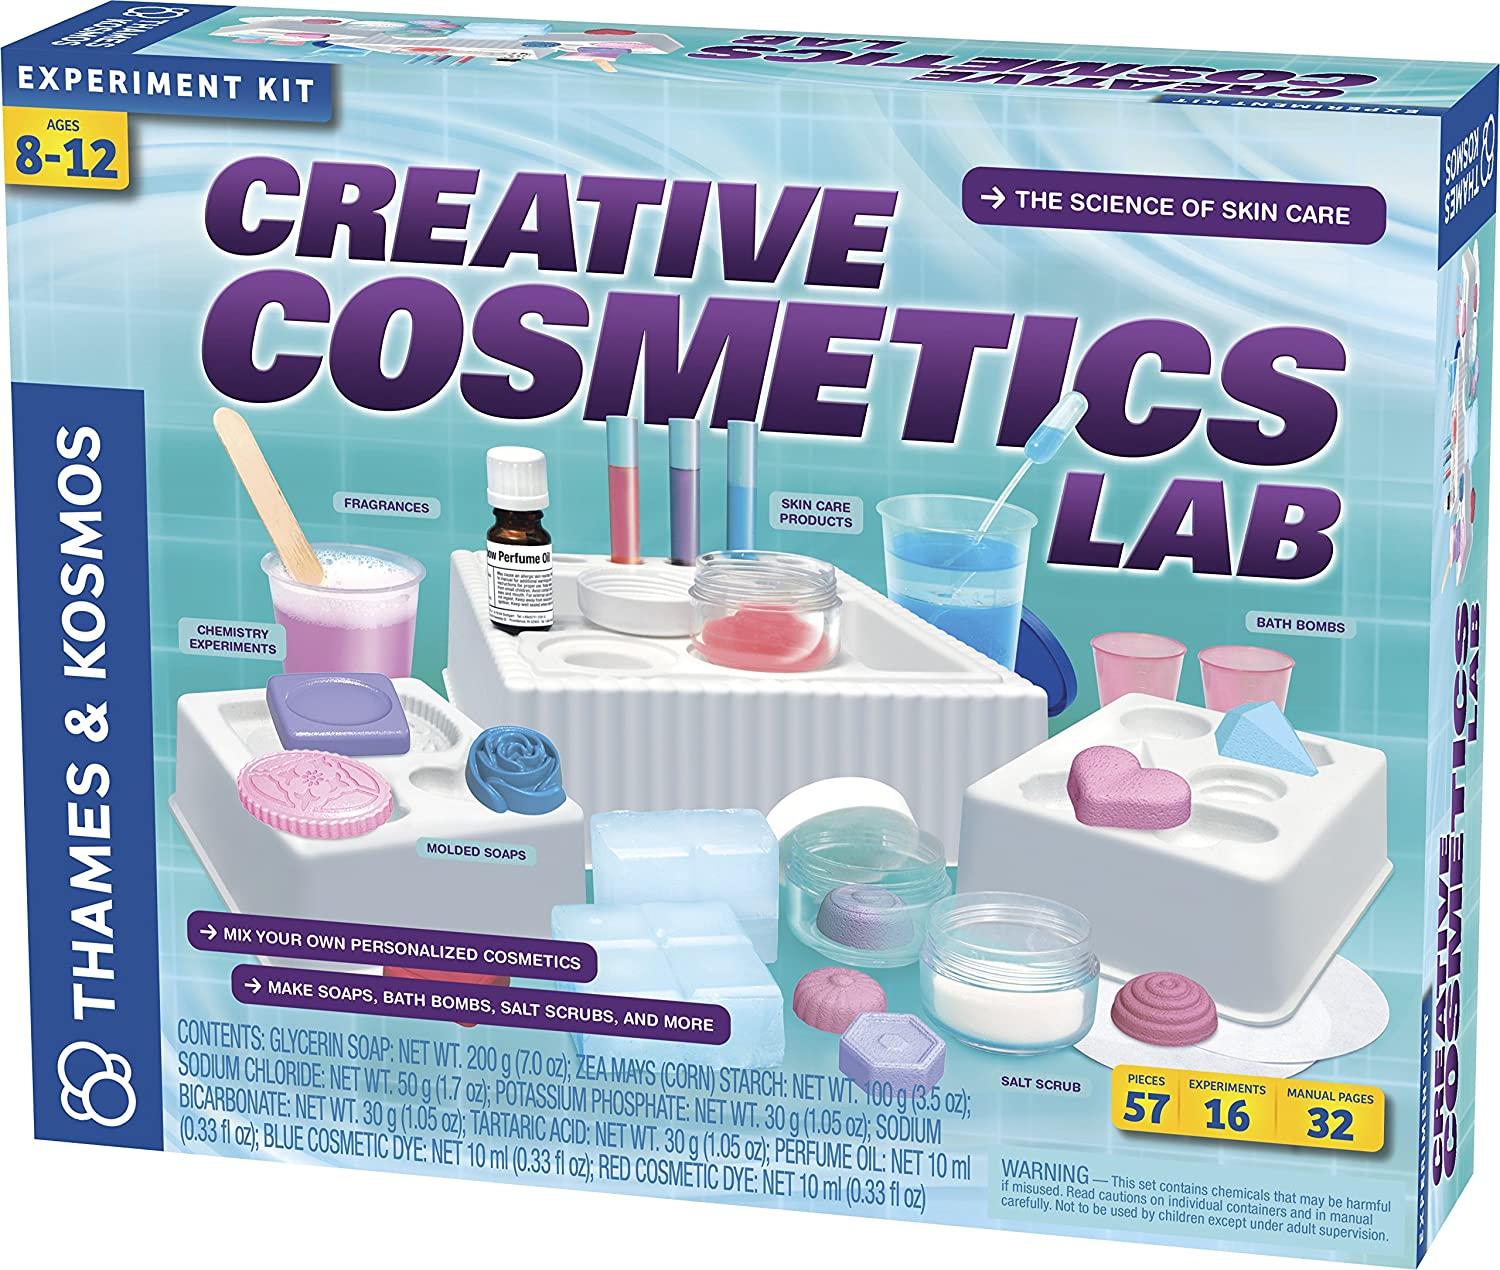 90e2f8024 Thames & Kosmos Creative Cosmetics Lab Science Kit | 16 Experiments  Including Soaps, Bath Bombs, Salt Scrubs | Toy of The Year Finalist |  Parents' Choice ...